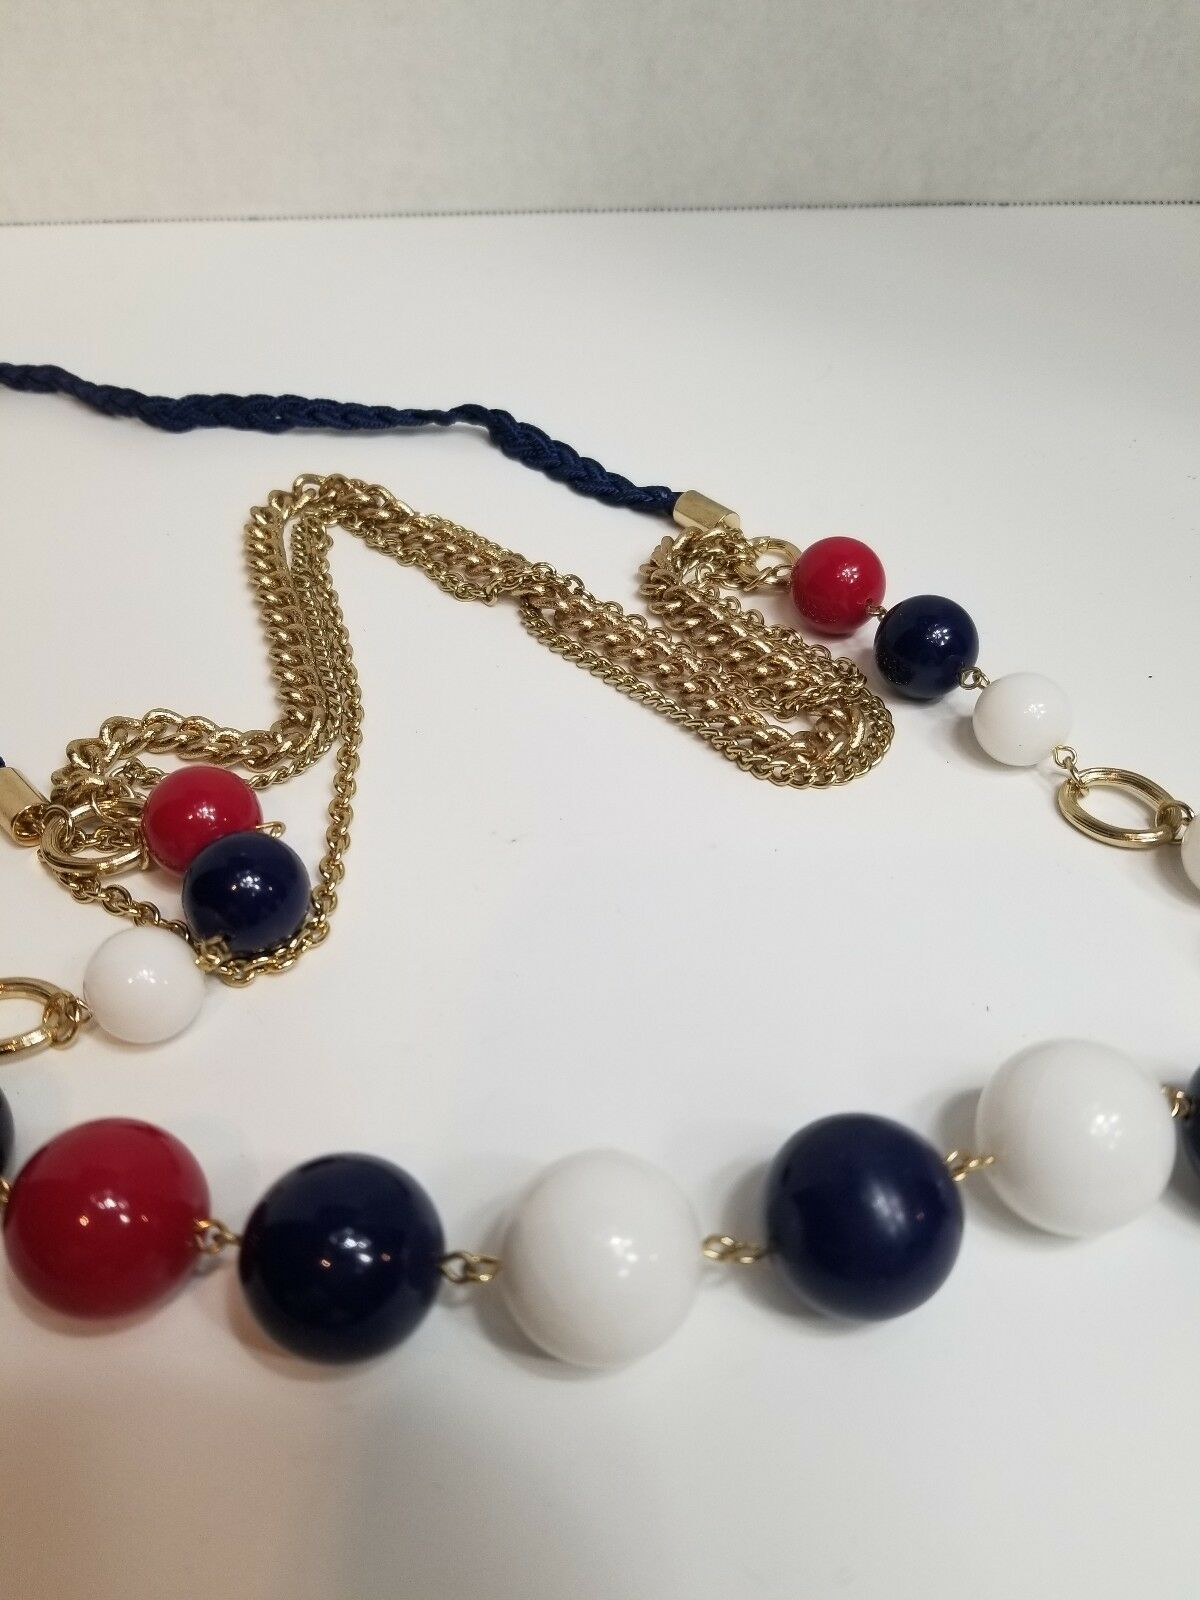 Multi Strand Beaded Chain Necklace - image 4